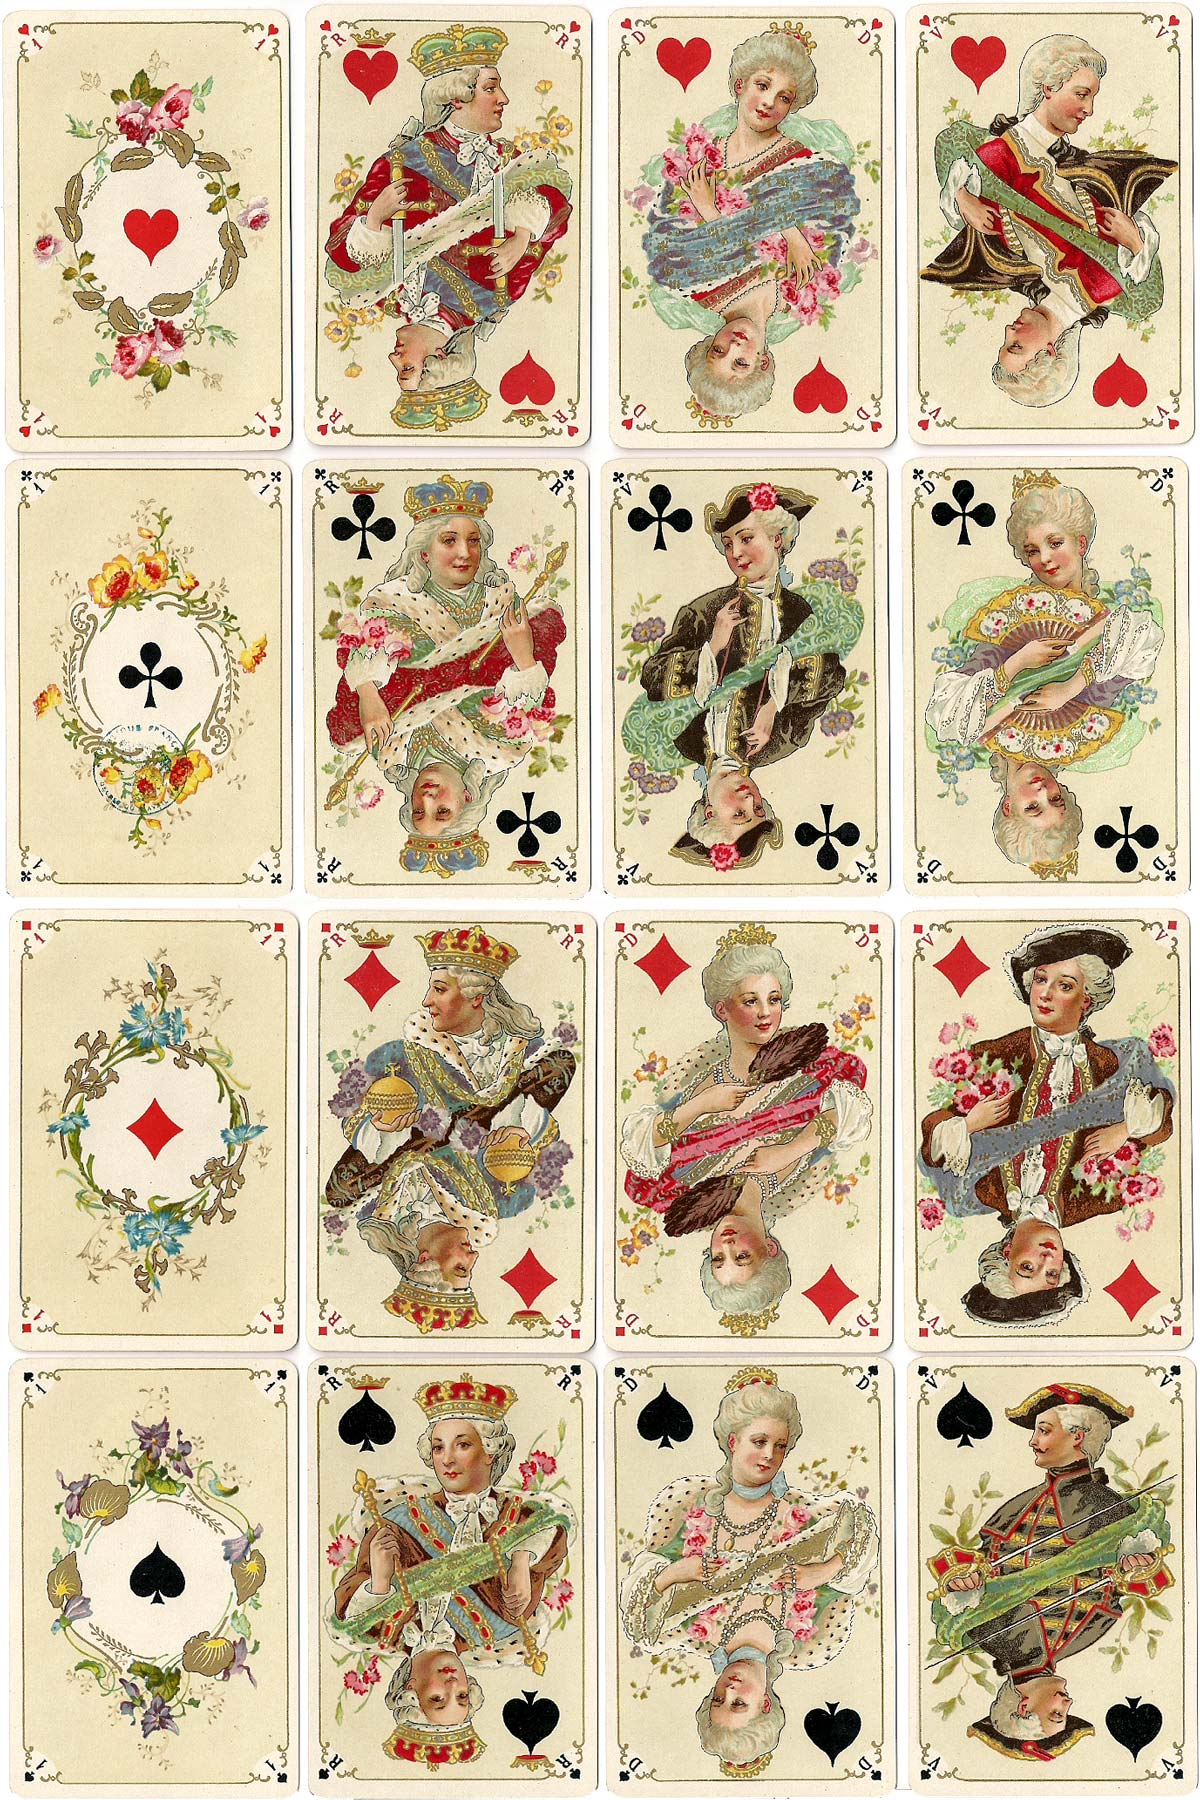 Jeu Louis XV, published by B.P. Grimaud, Paris, c.1895